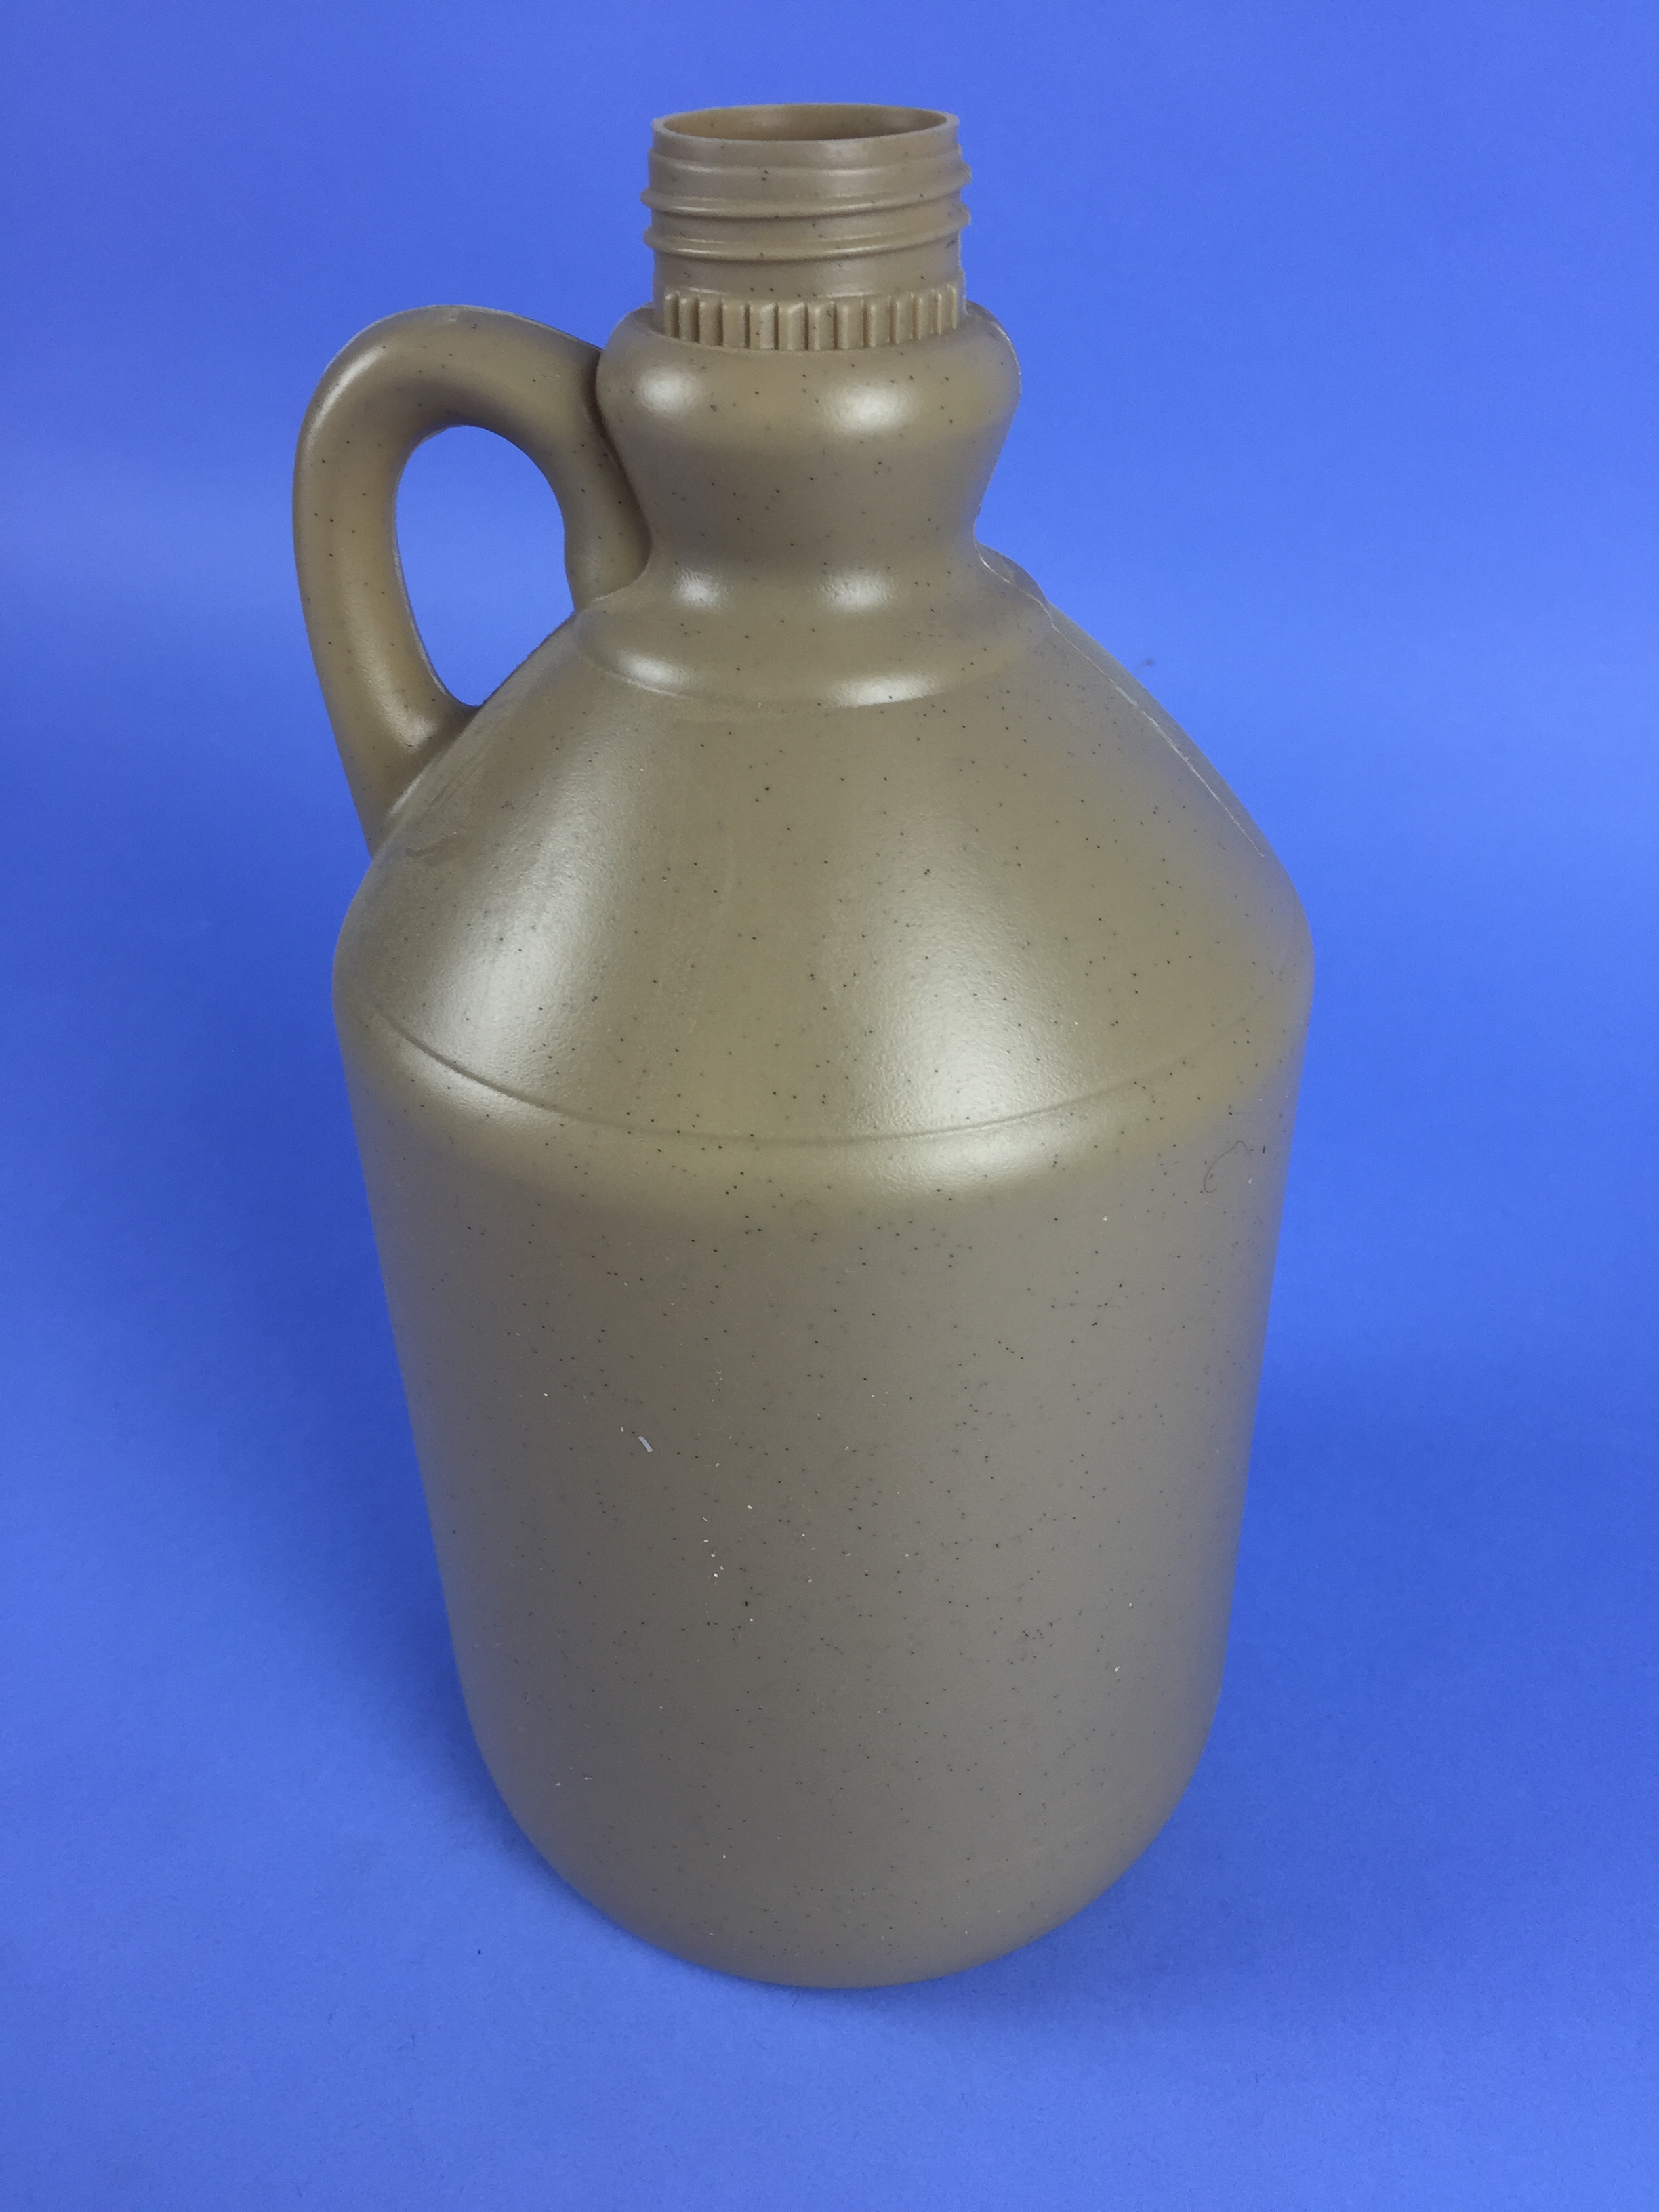 Stone Effect 2 5 Litre Cider Jug Beer Growler Bristol Plastics Amp Containers